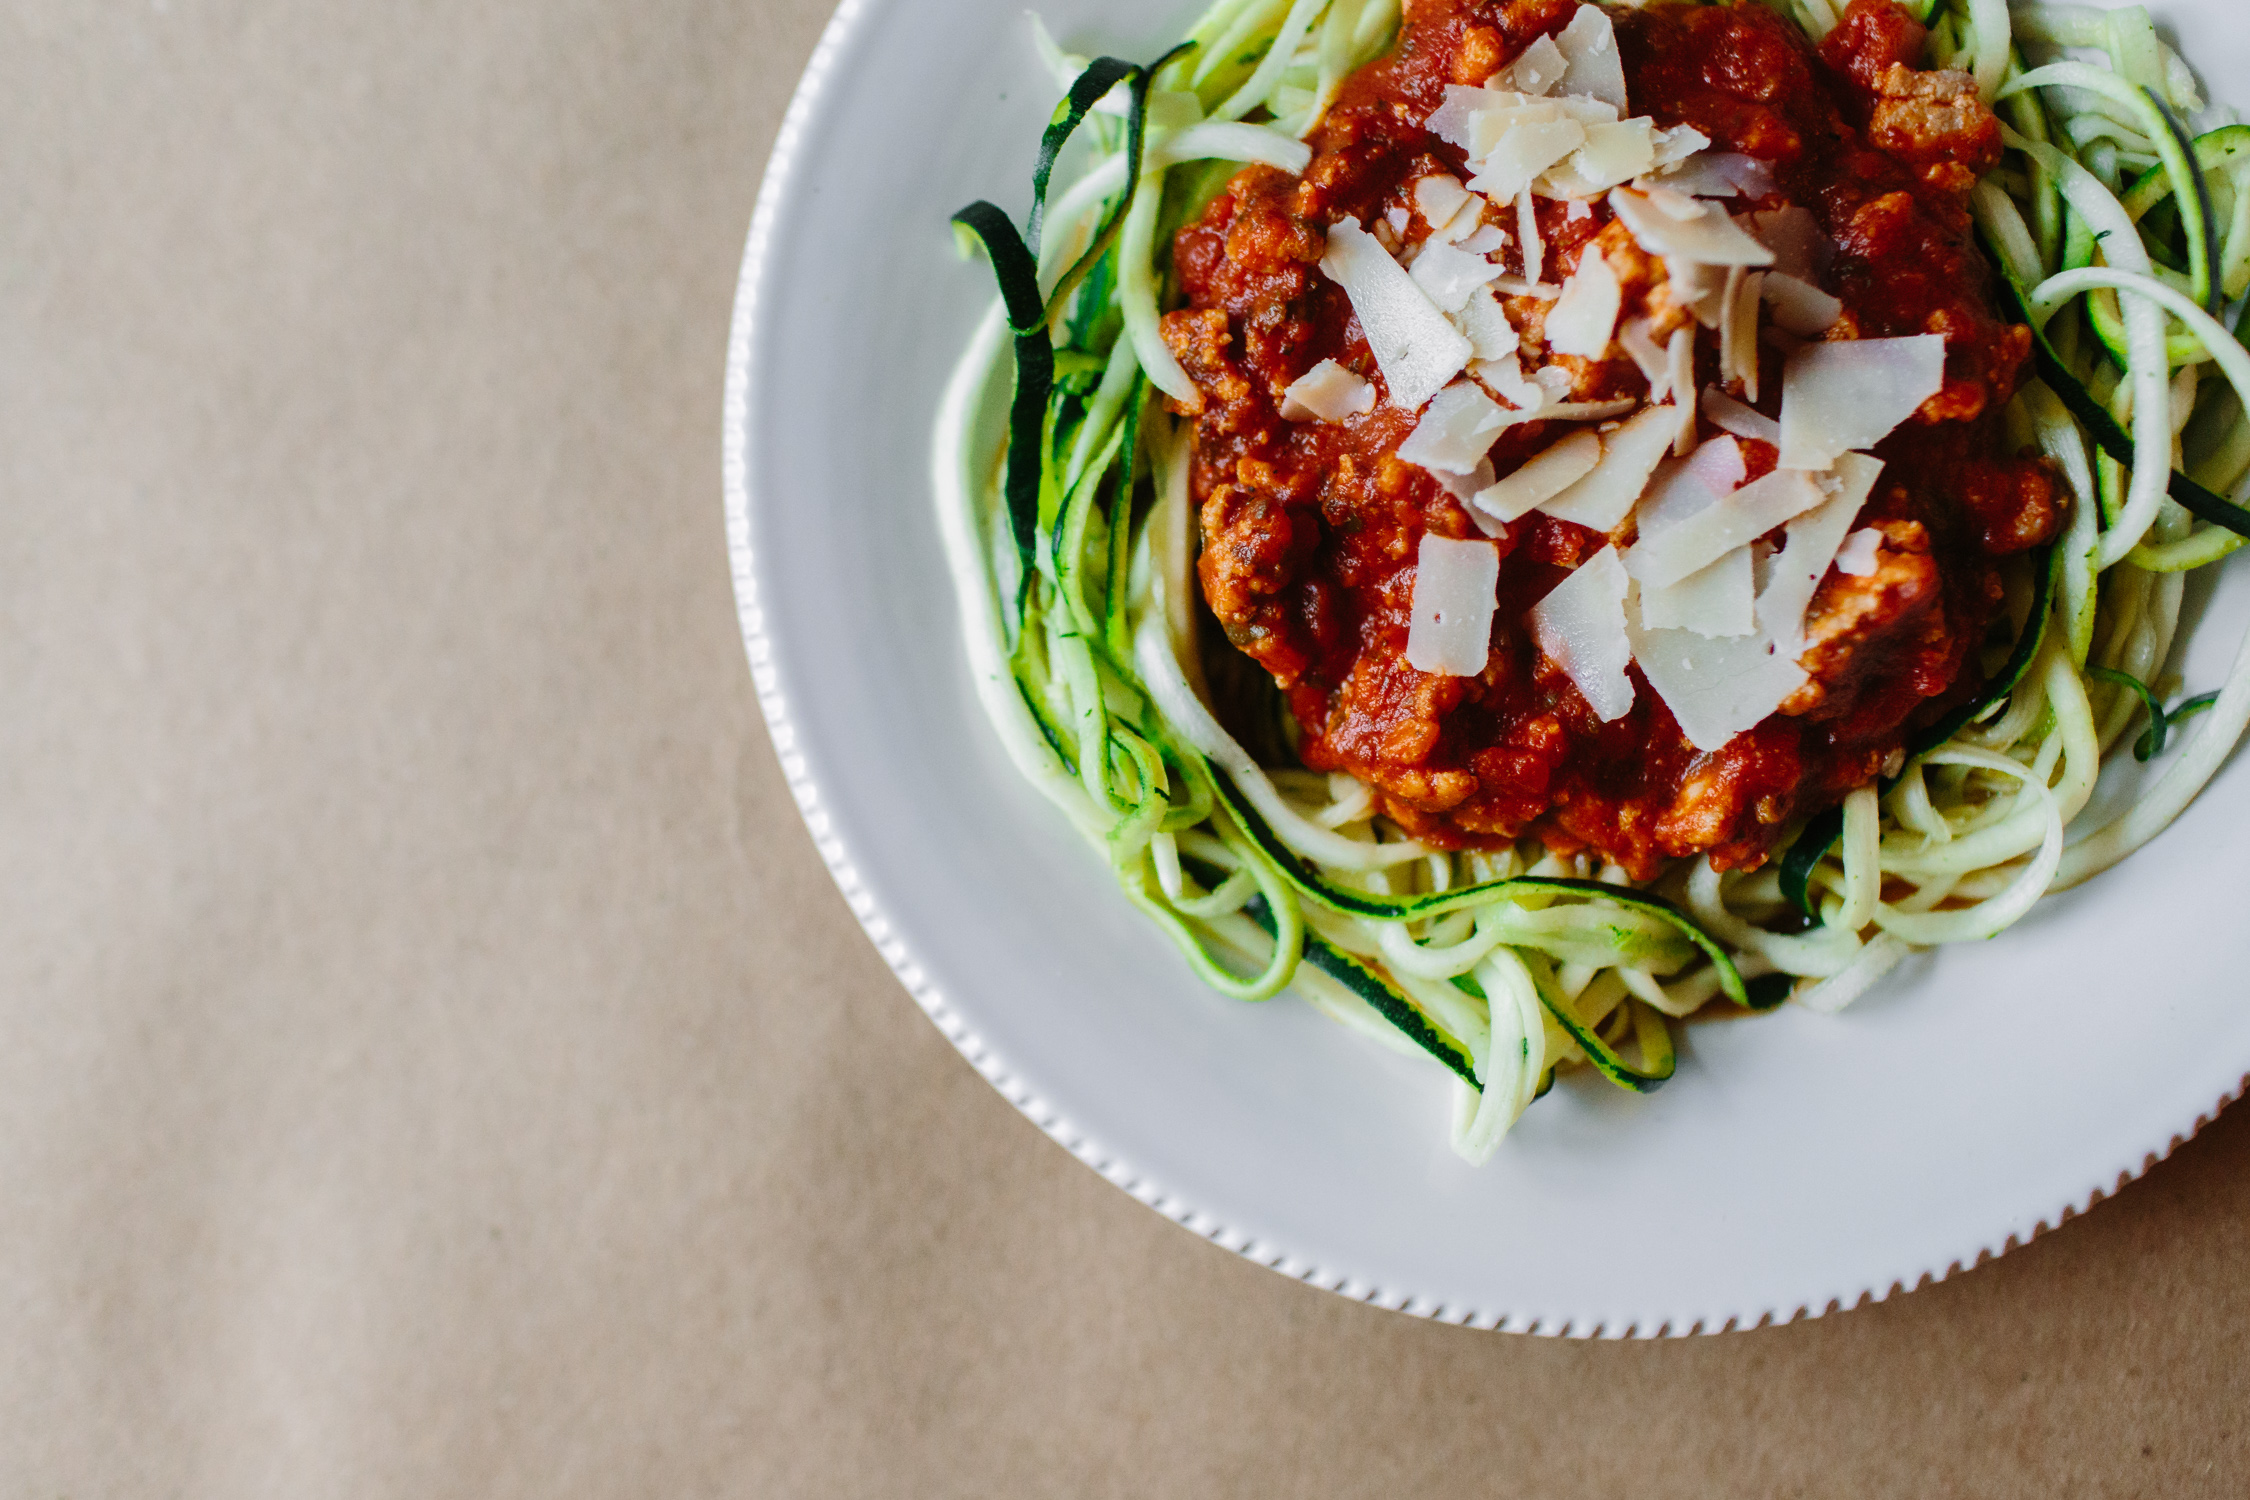 Zucchini Noodles with Marinara Sauce business, self, personal, how to prepare for a photoshoot, tips, lifestyle, ideas, creative, indoors, light and airy, natural light, photoshoot, inspiration, photographer, colorful, vibrant, Knoxville, Tennessee, food